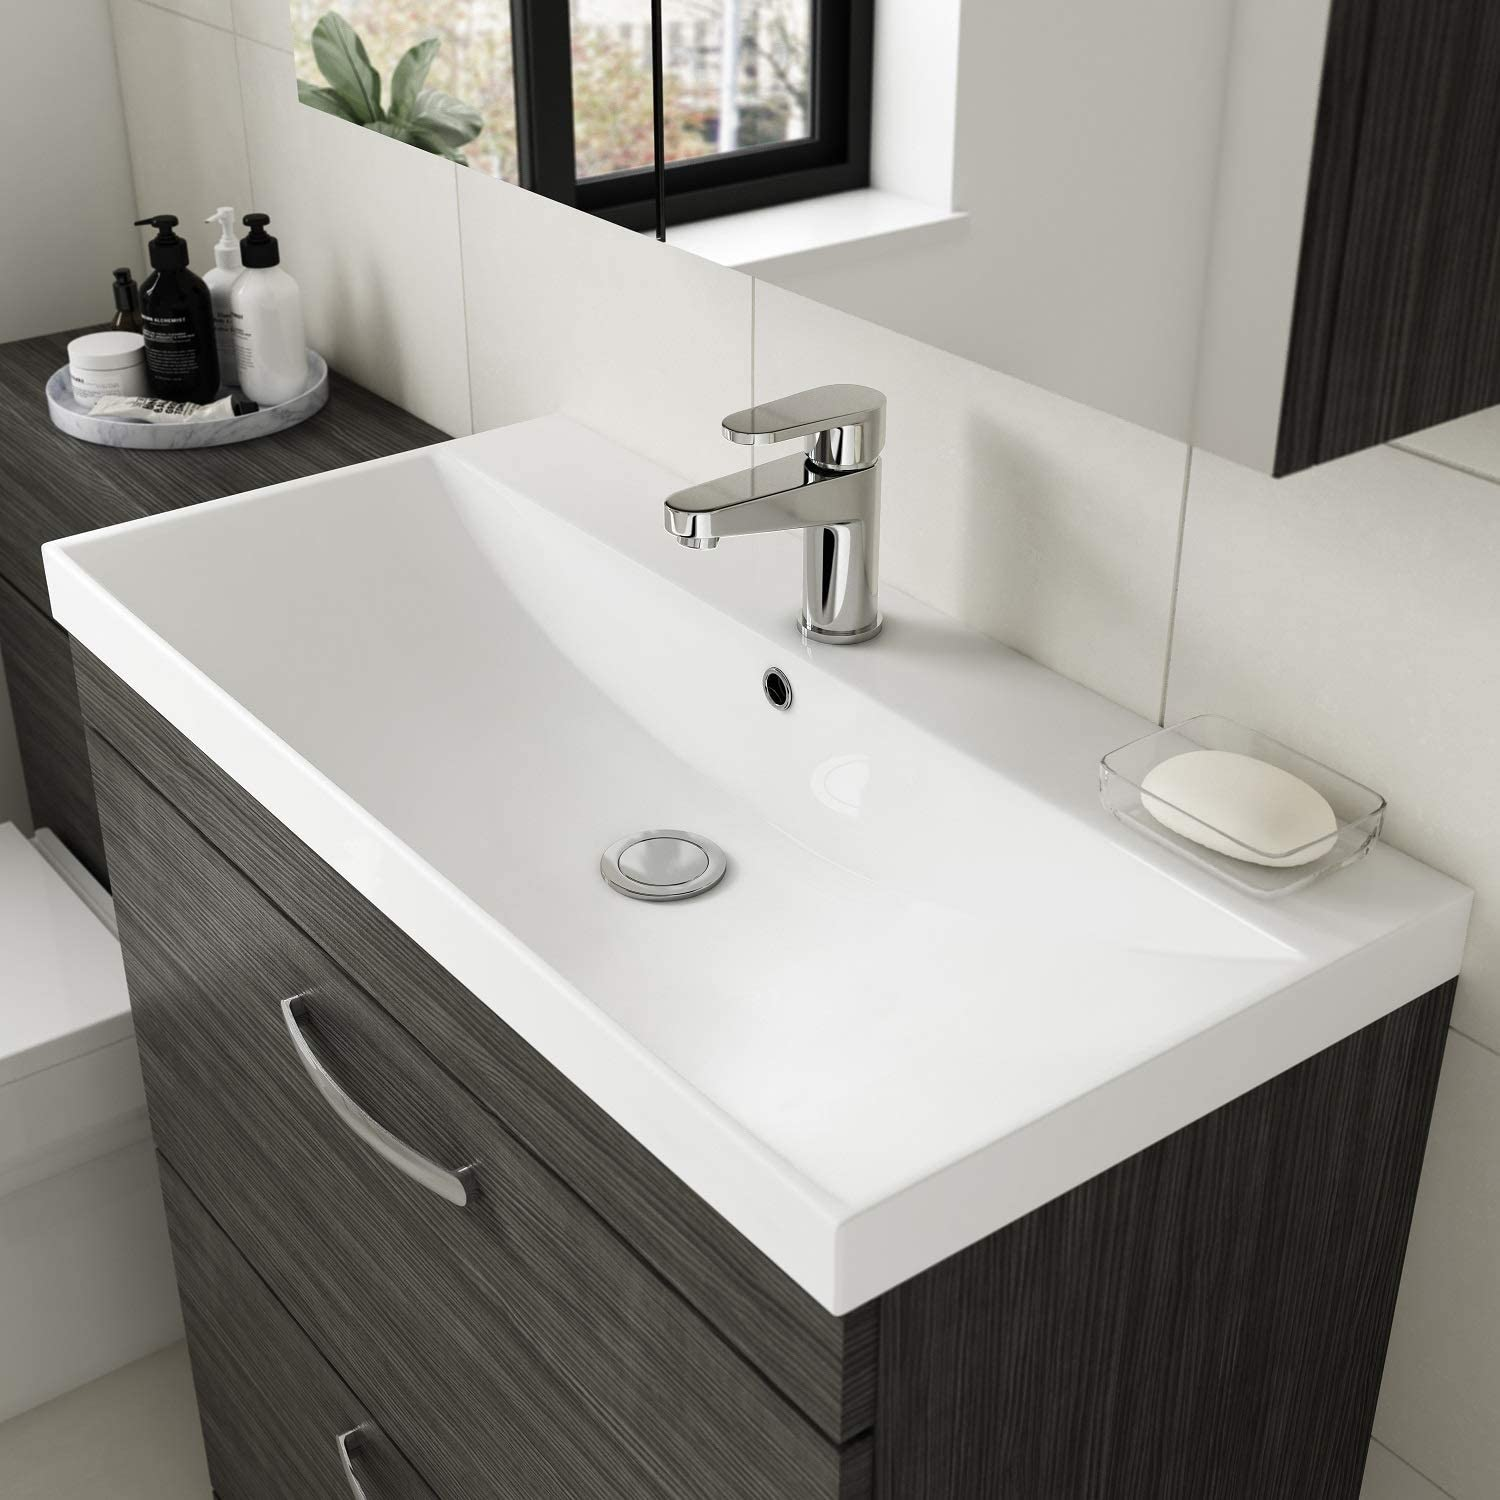 Nuie ATH050D Athena Modern Floor Standing Bathroom Vanity Sink Unit with Soft Close Drawers and Thin Edge Basin 800mm Driftwood